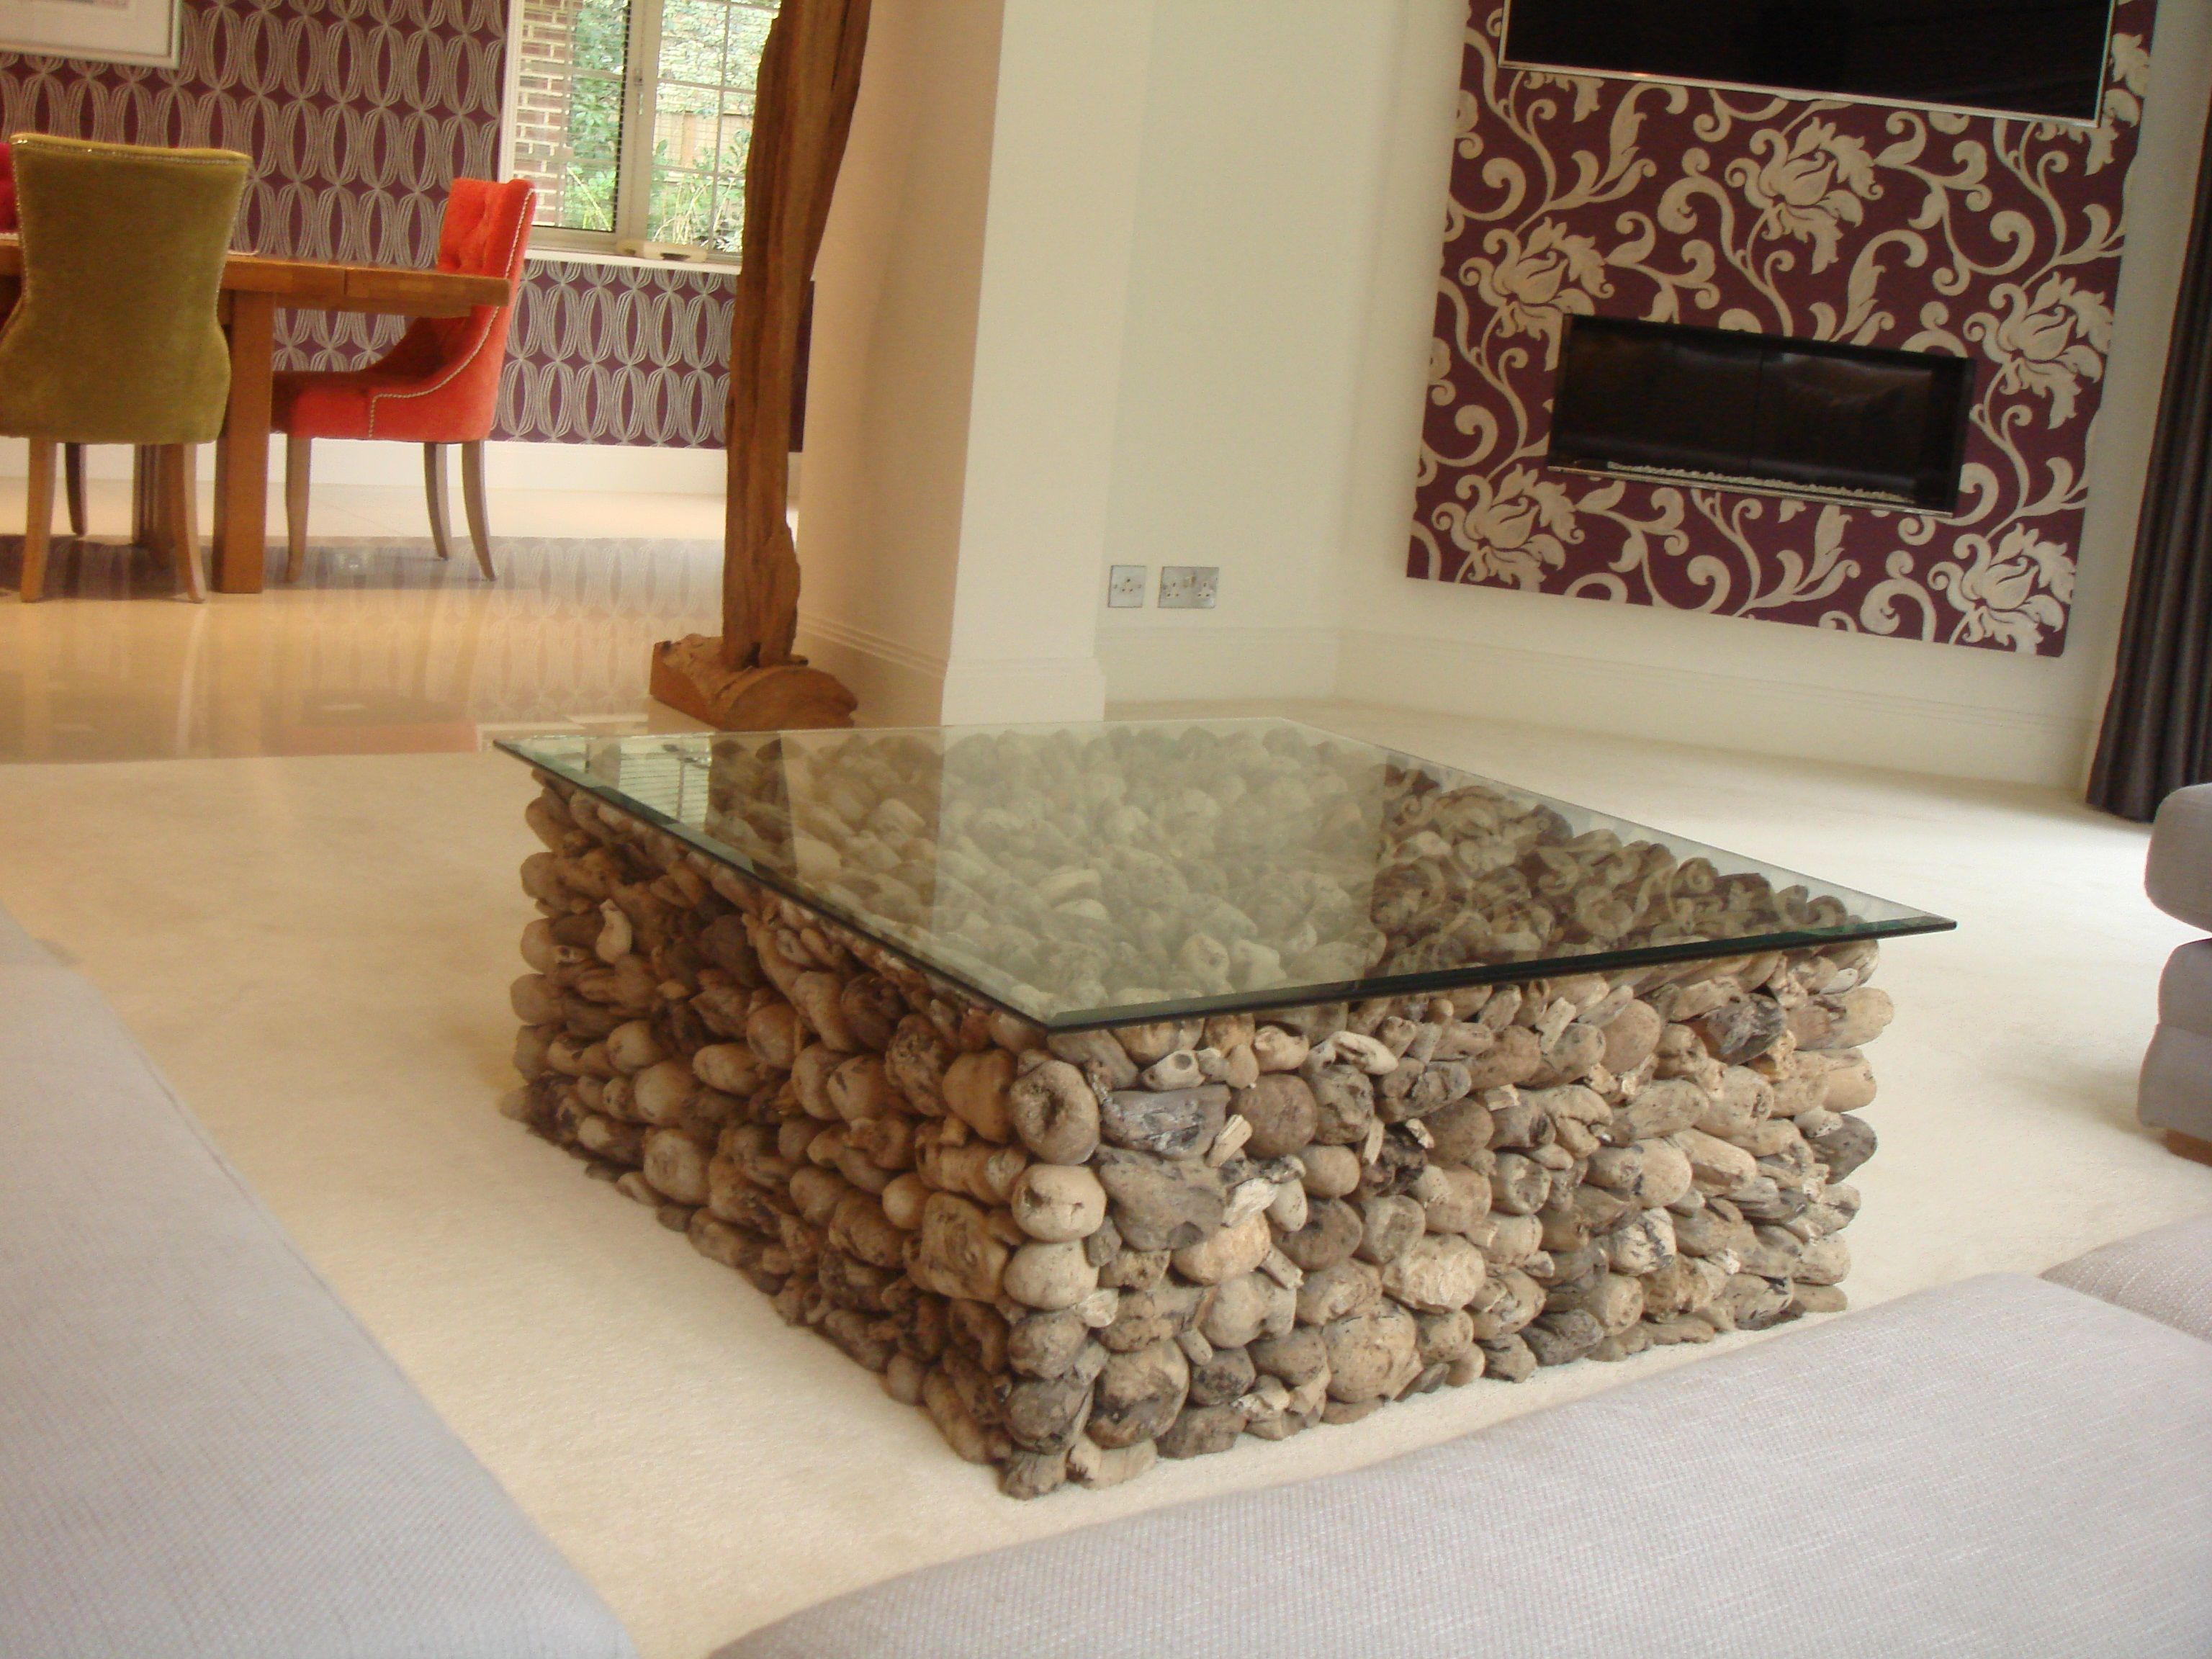 DriftwoodGlassCoffeeTableukisthislovelyrecycledwoodiron - Rustic wood and glass coffee table